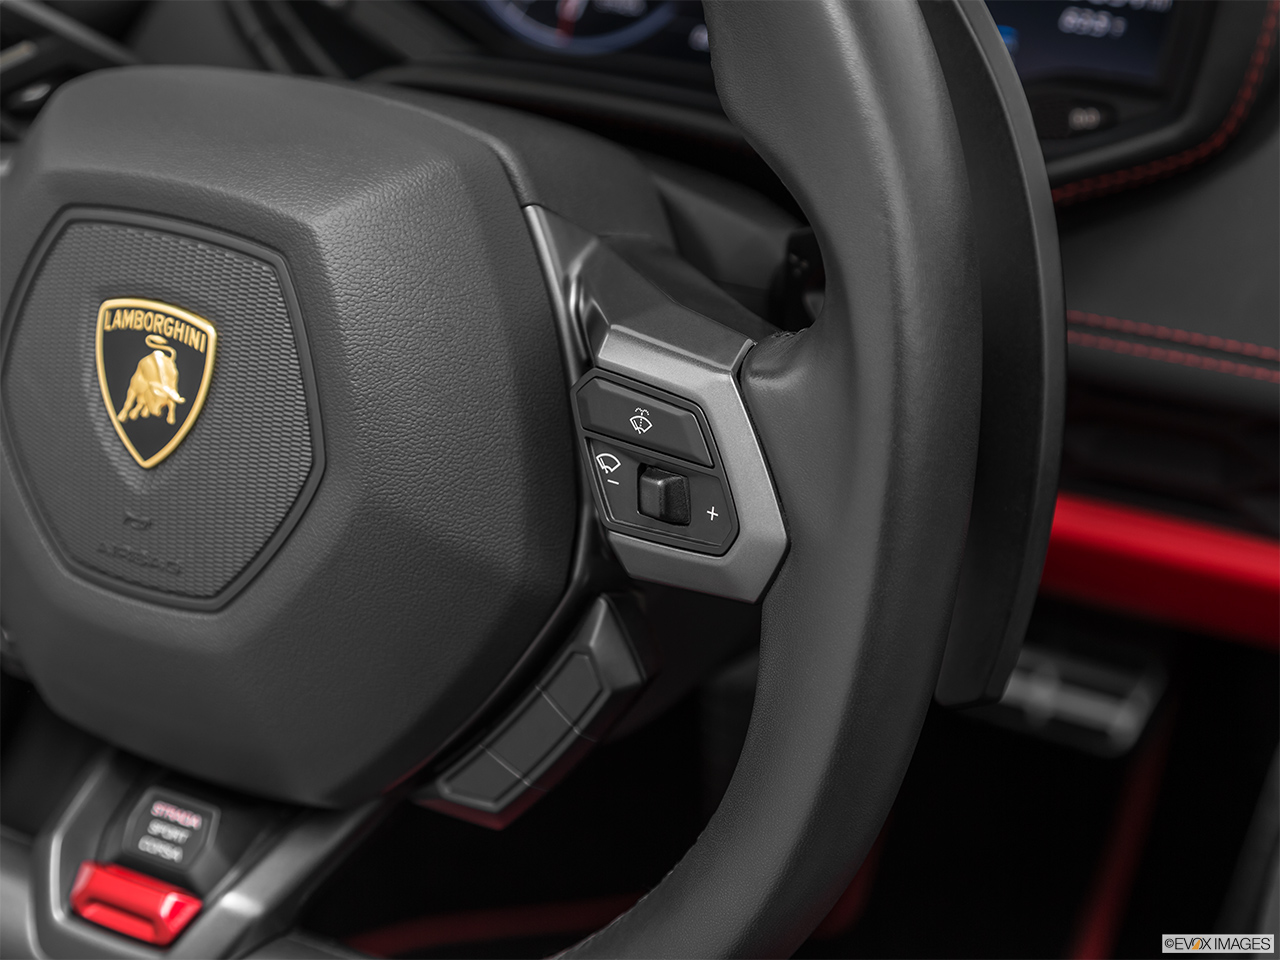 2019 Lamborghini Huracan Spyder LP580-2S Steering Wheel Controls (Right Side)